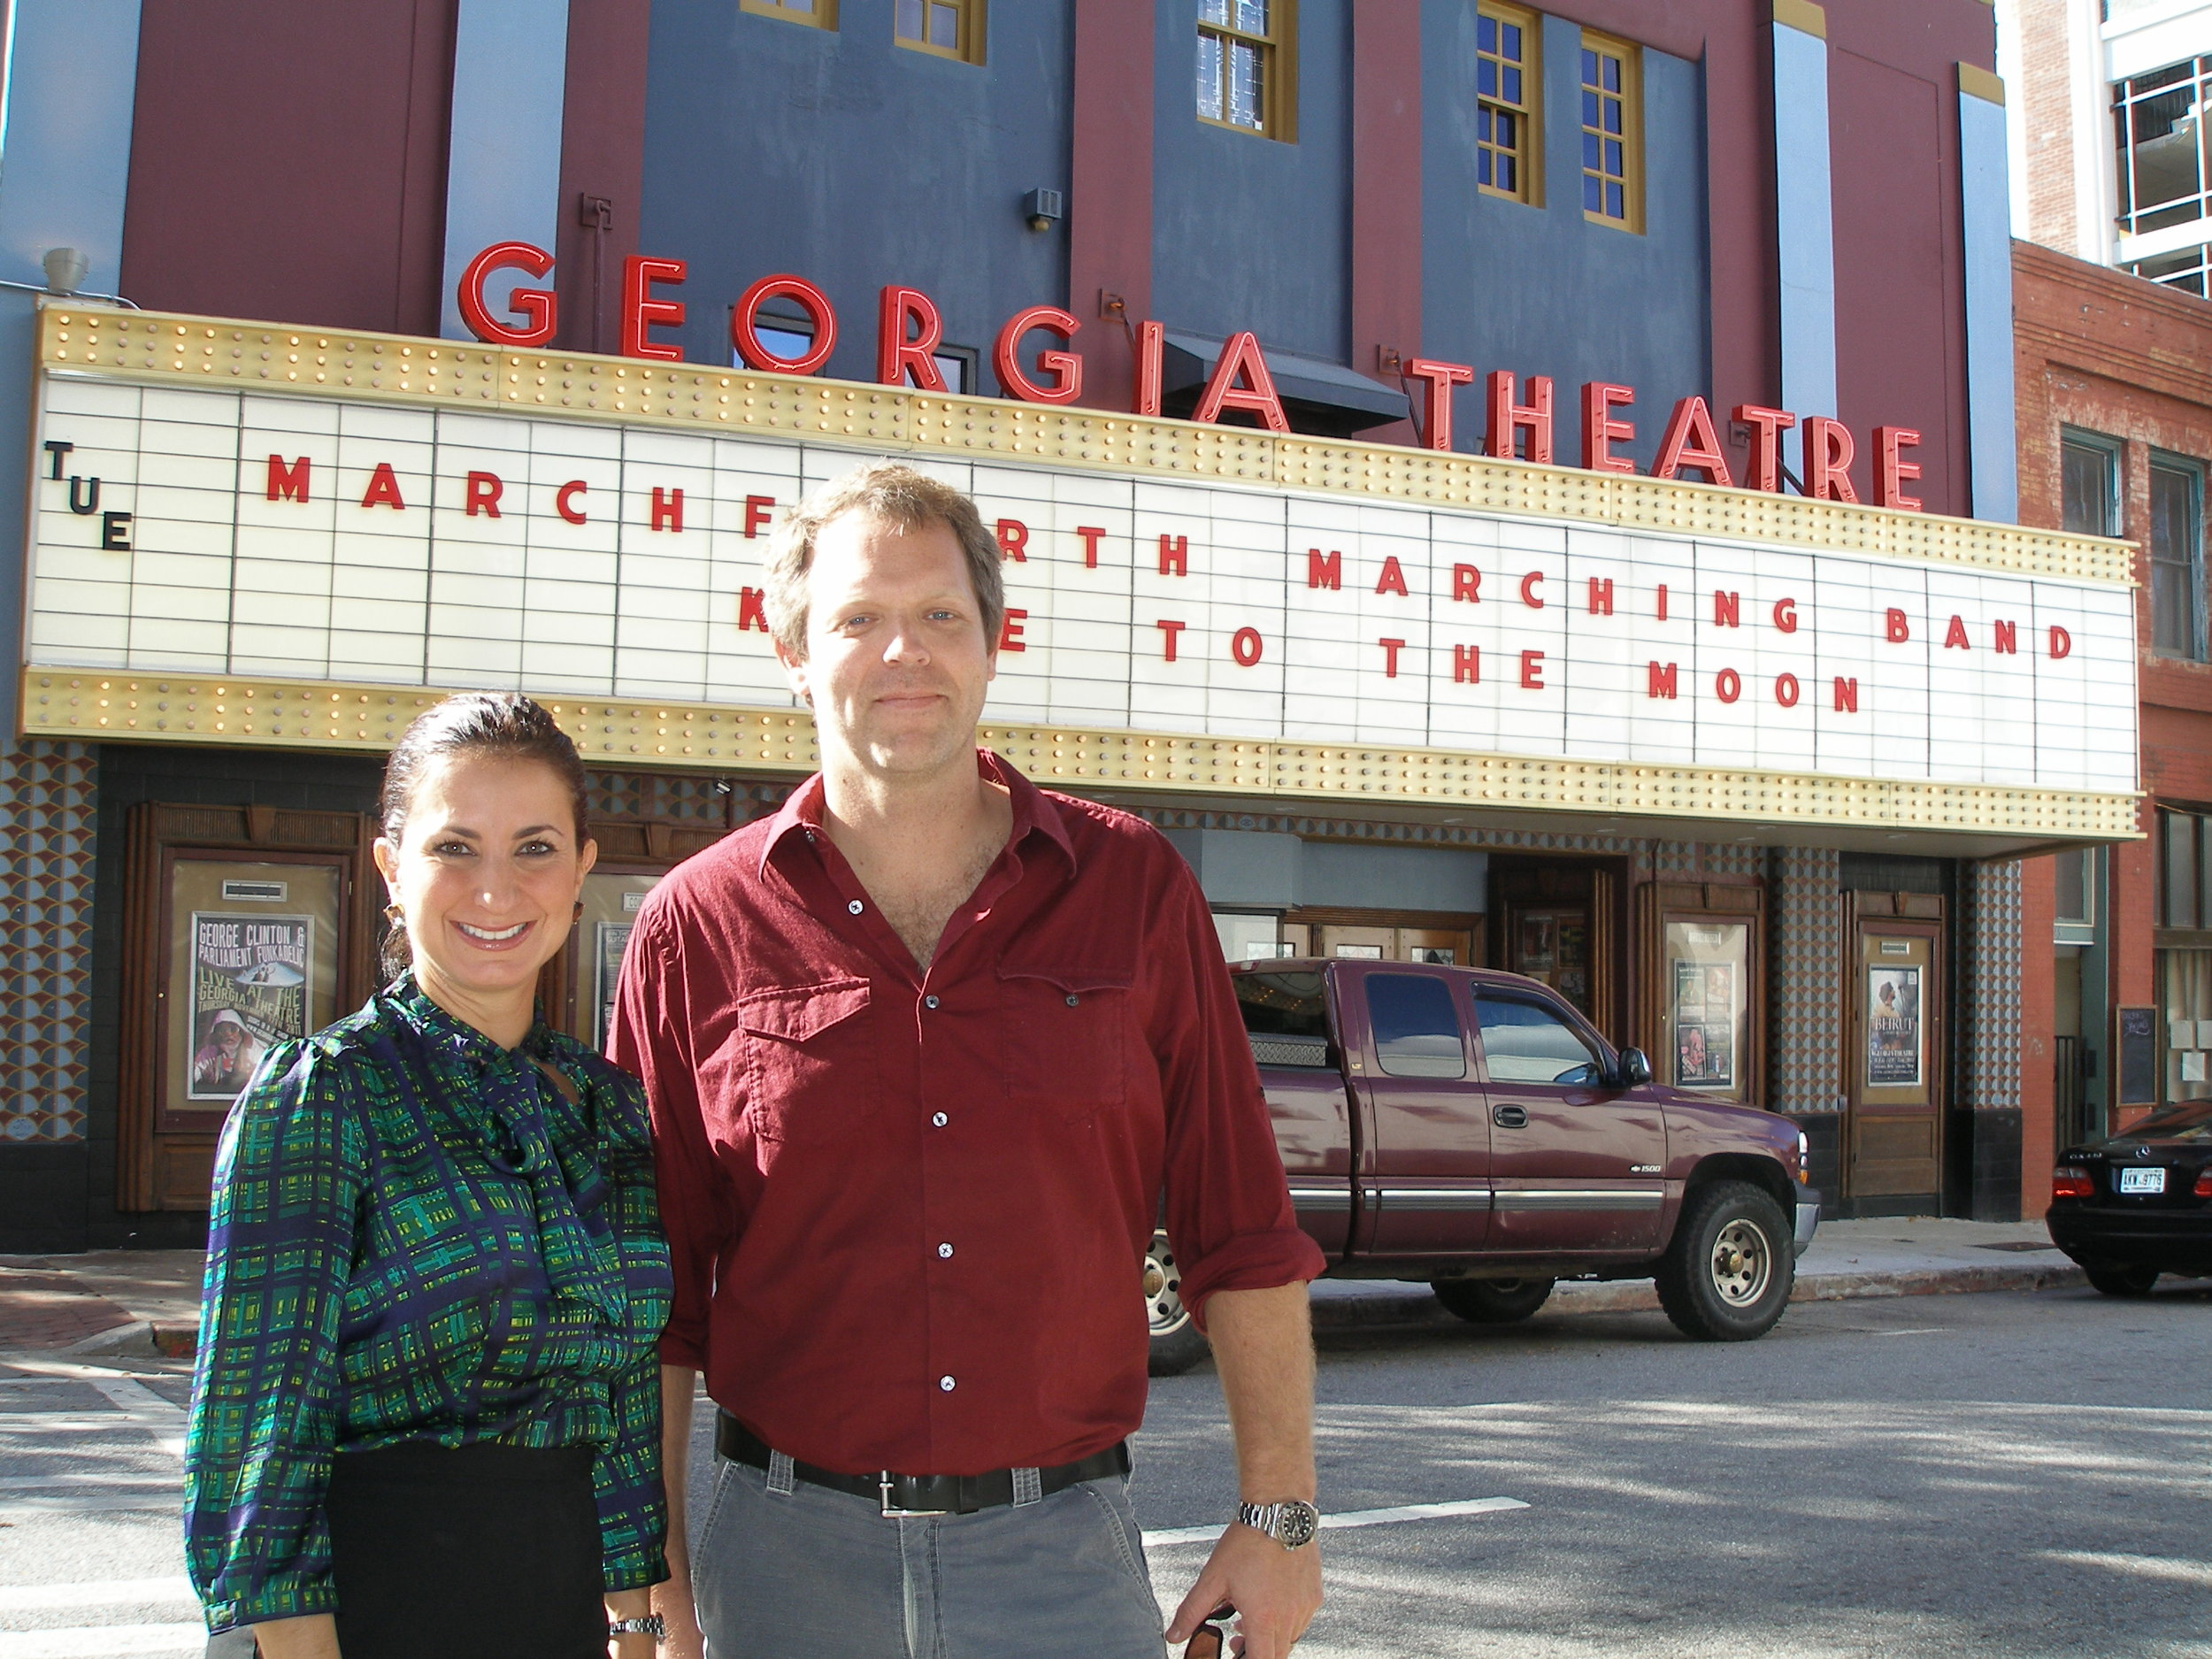 Georgia Theater - Athens, Georgia 2.JPG